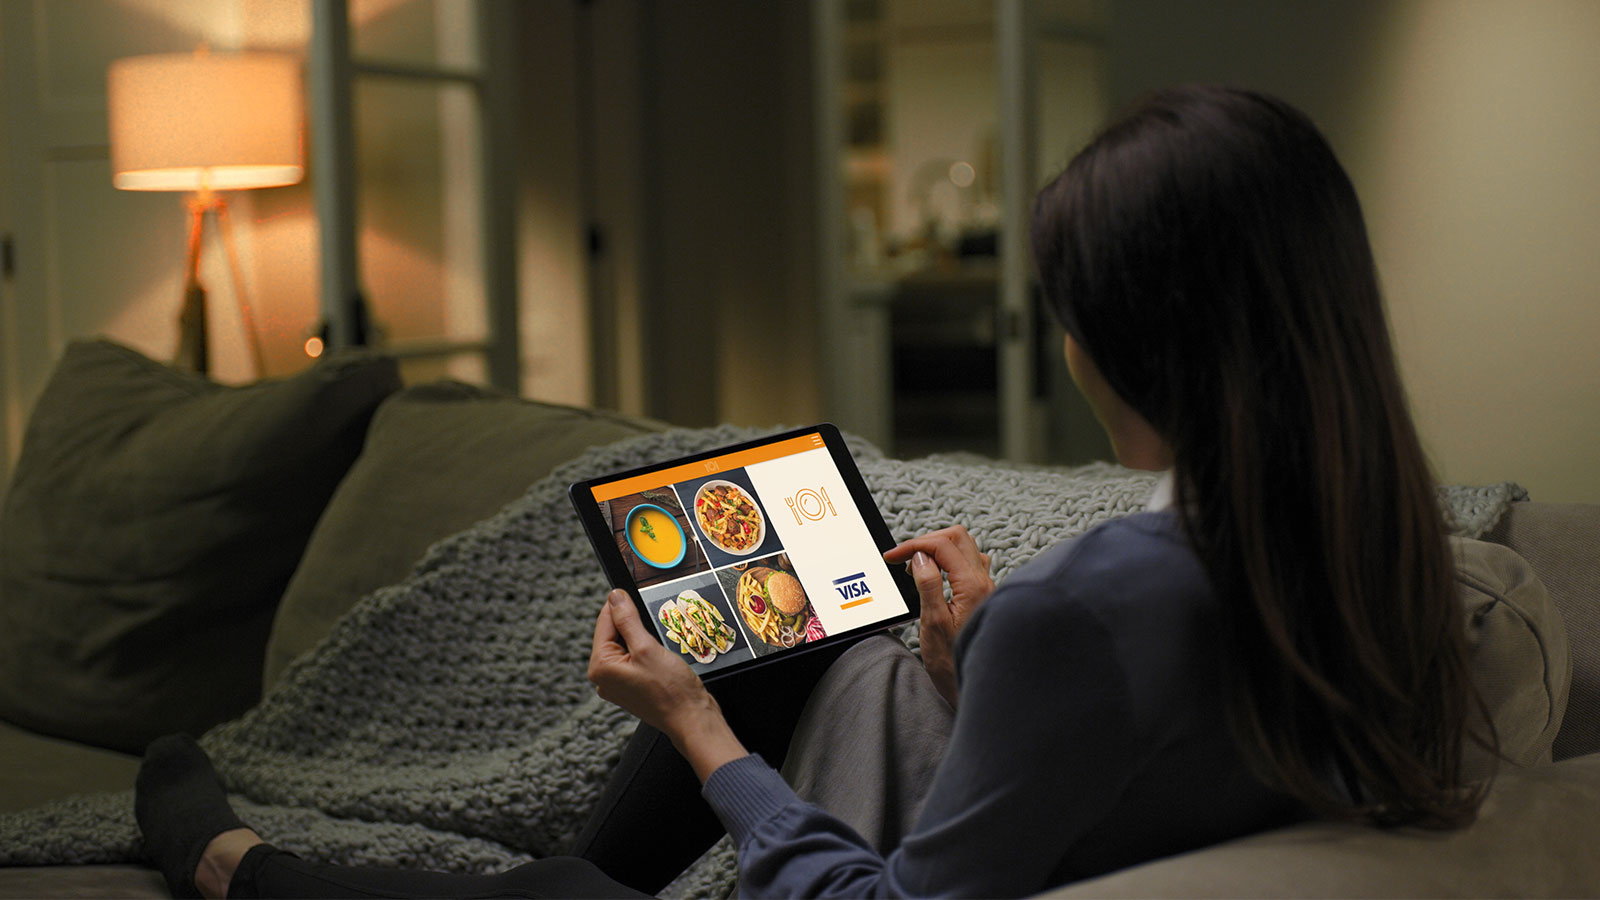 lady using tablet on couch